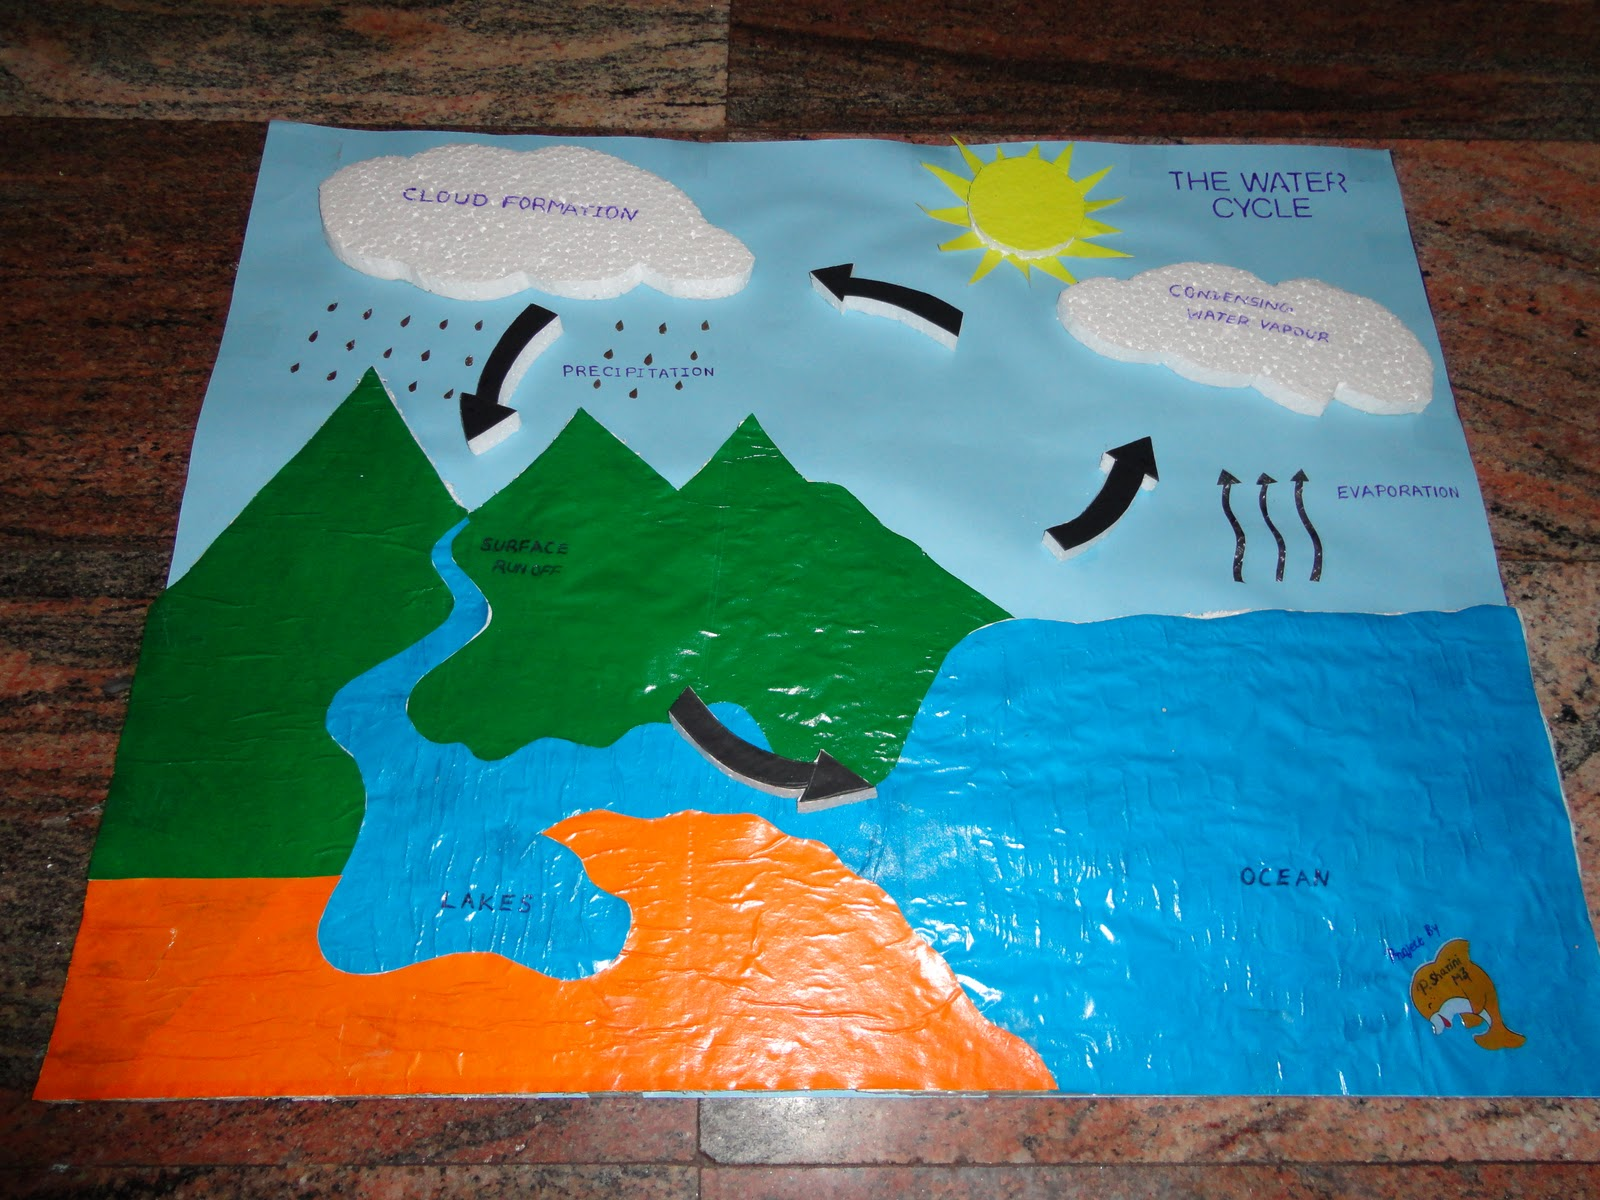 Water cycle projects for 4th grade